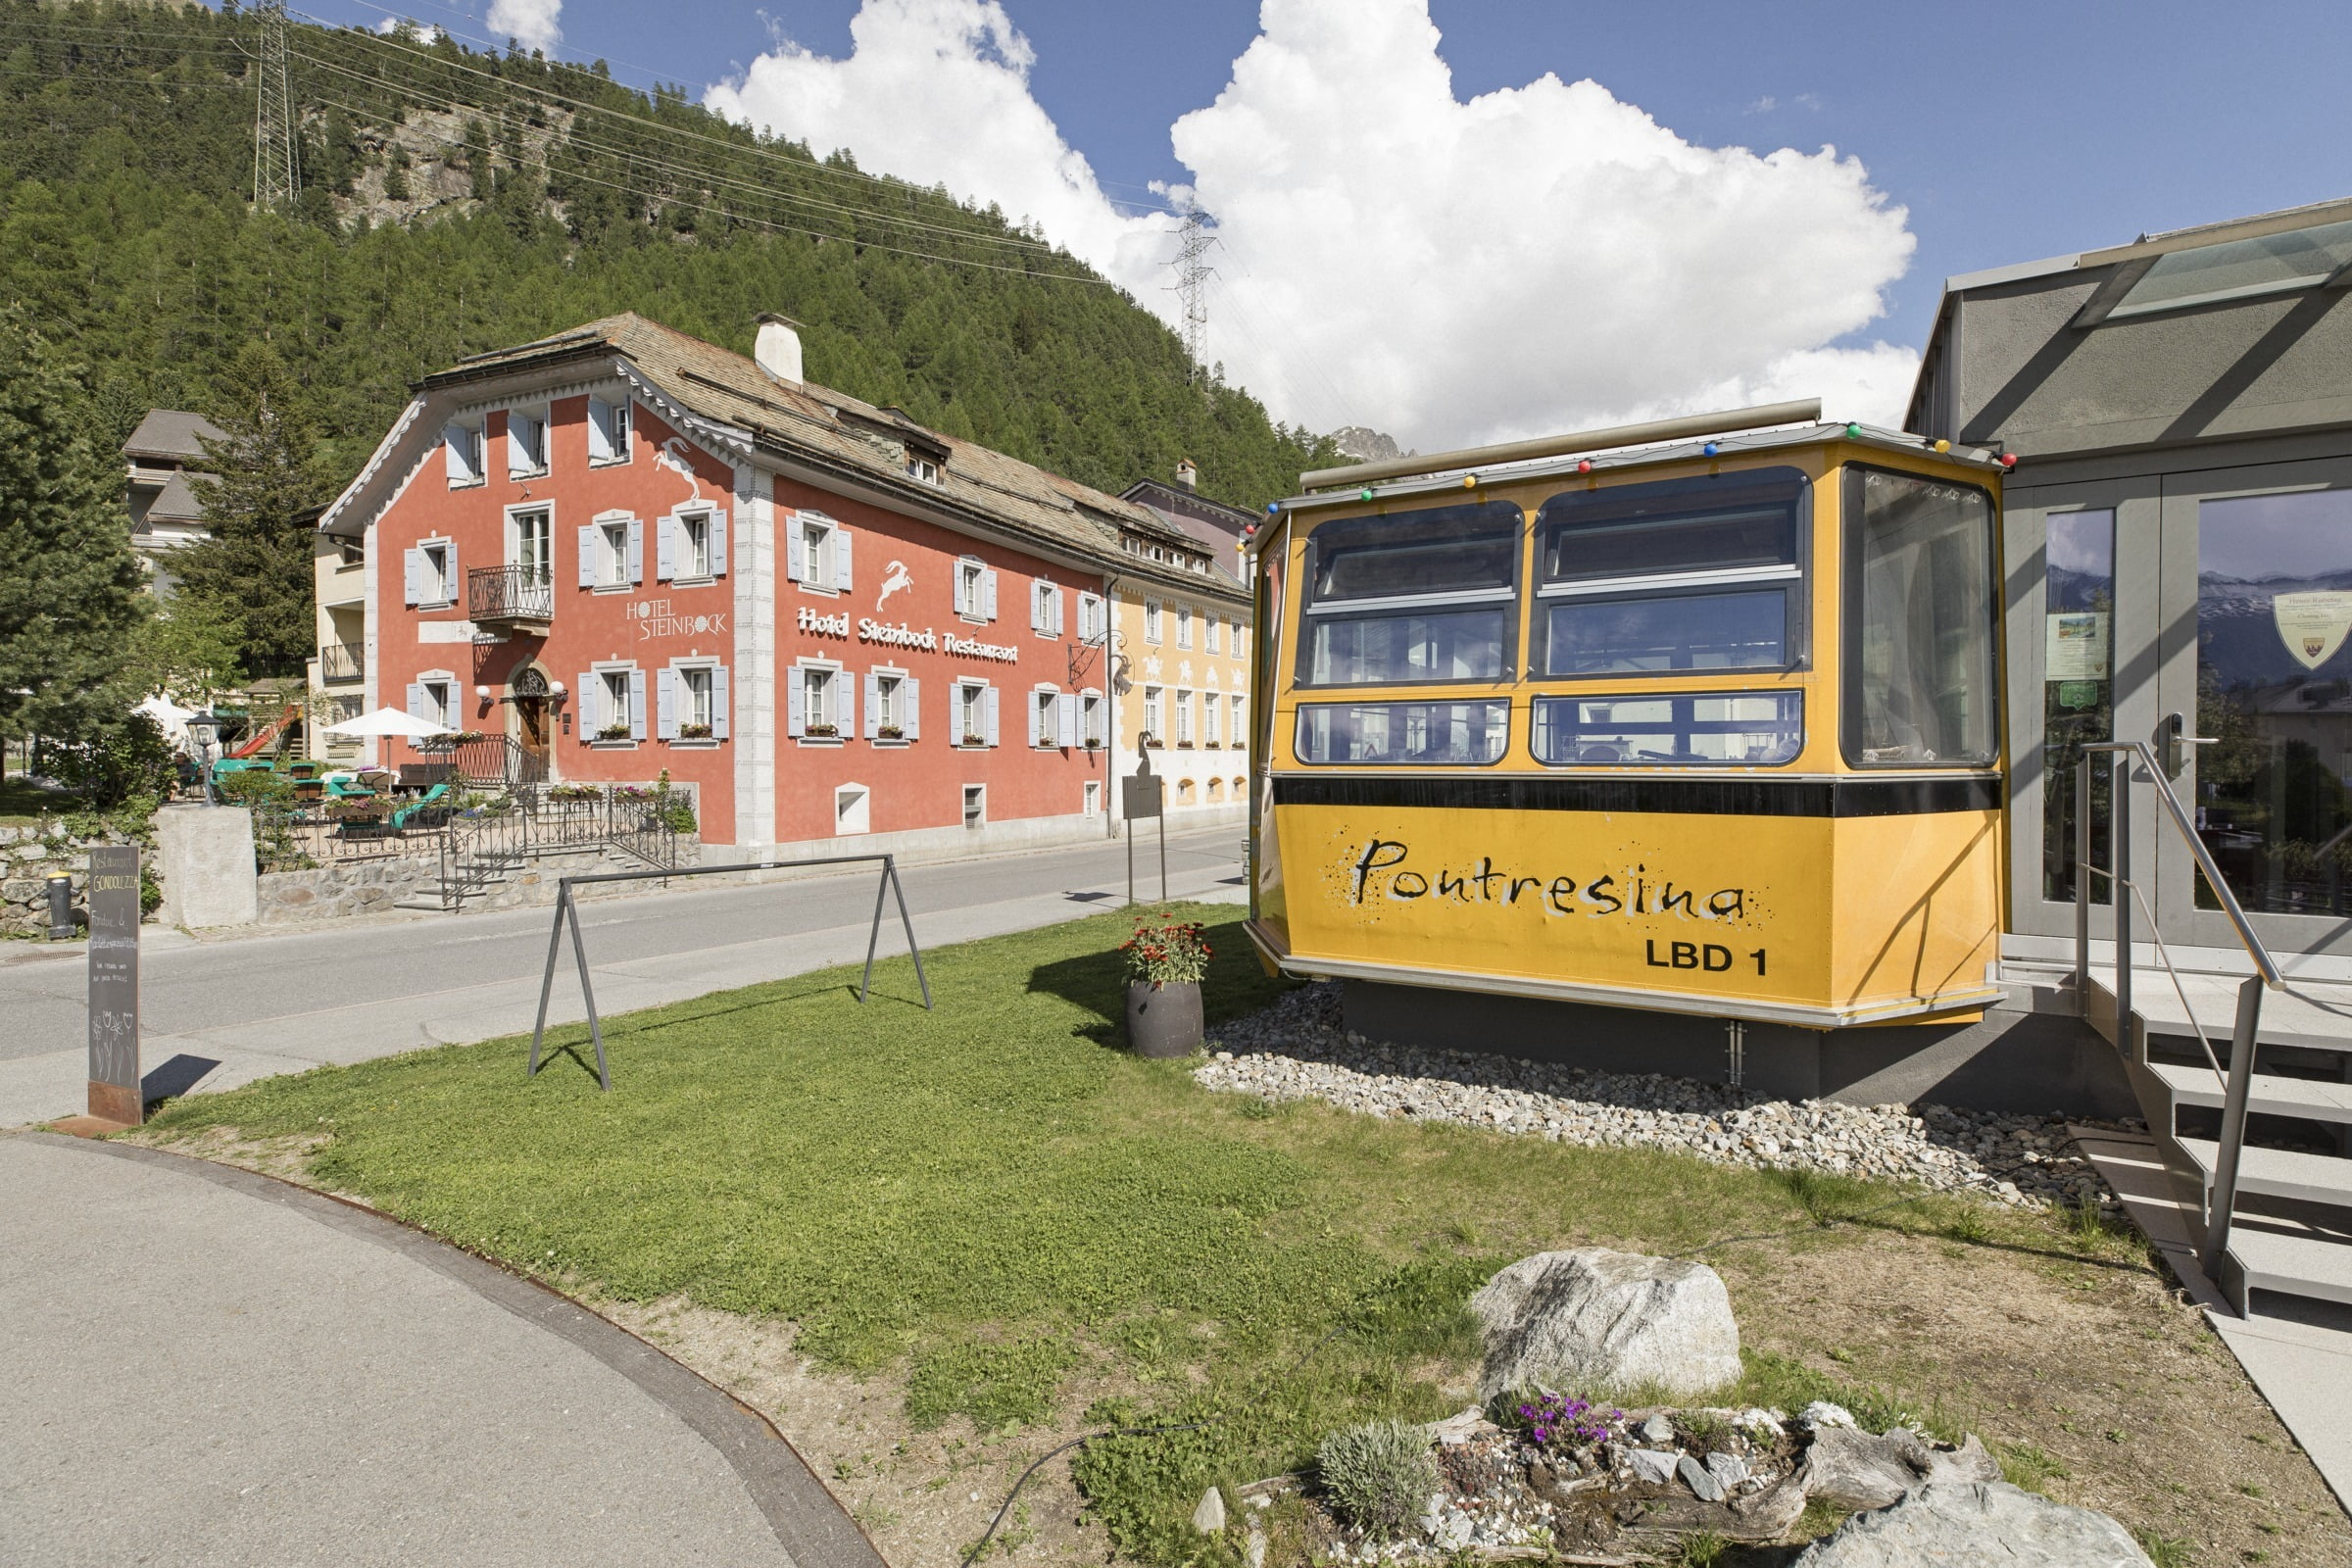 Village tour of Pontresina